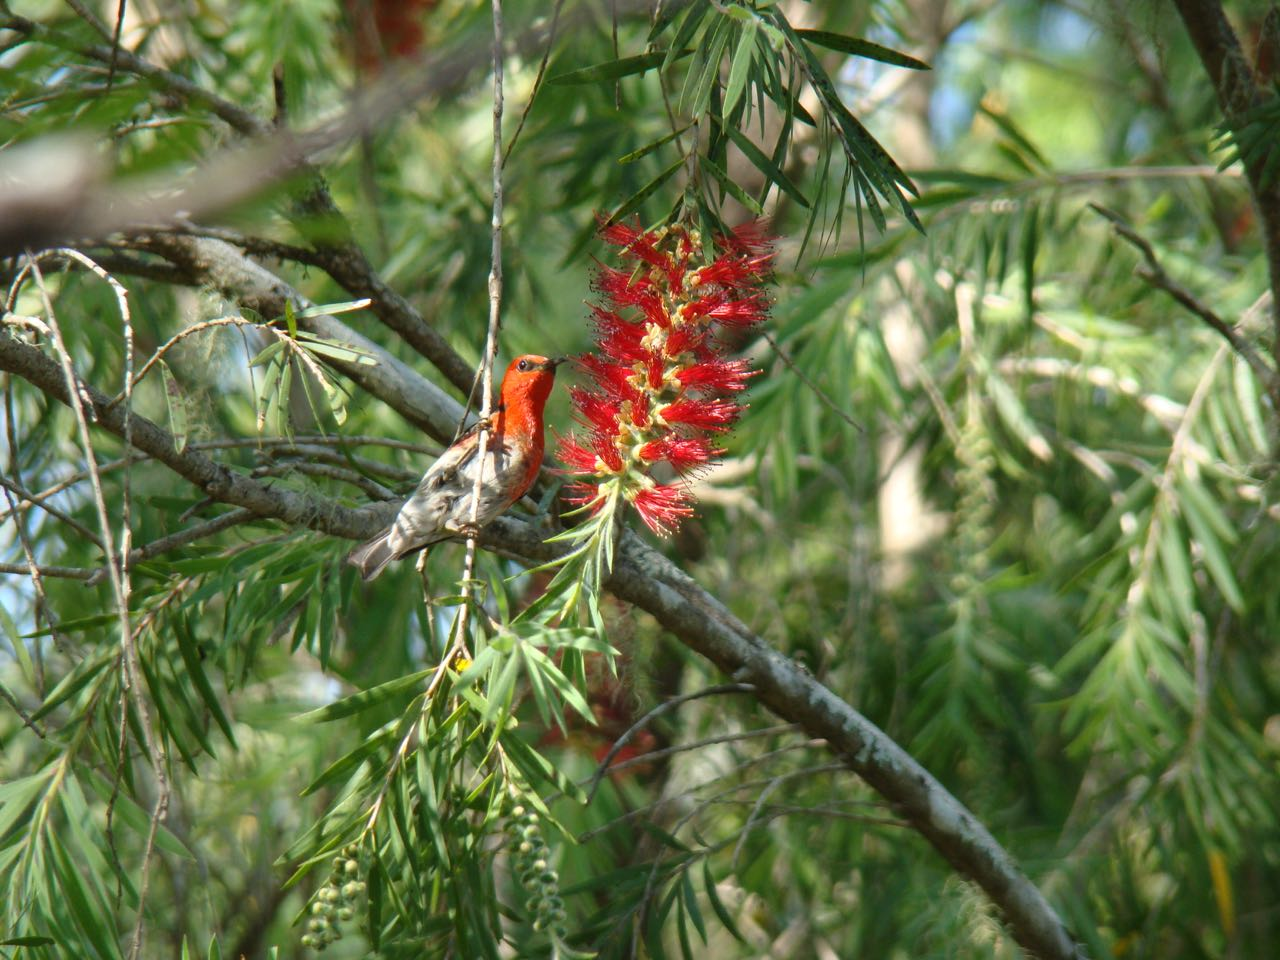 Scarlet Honeyeater again